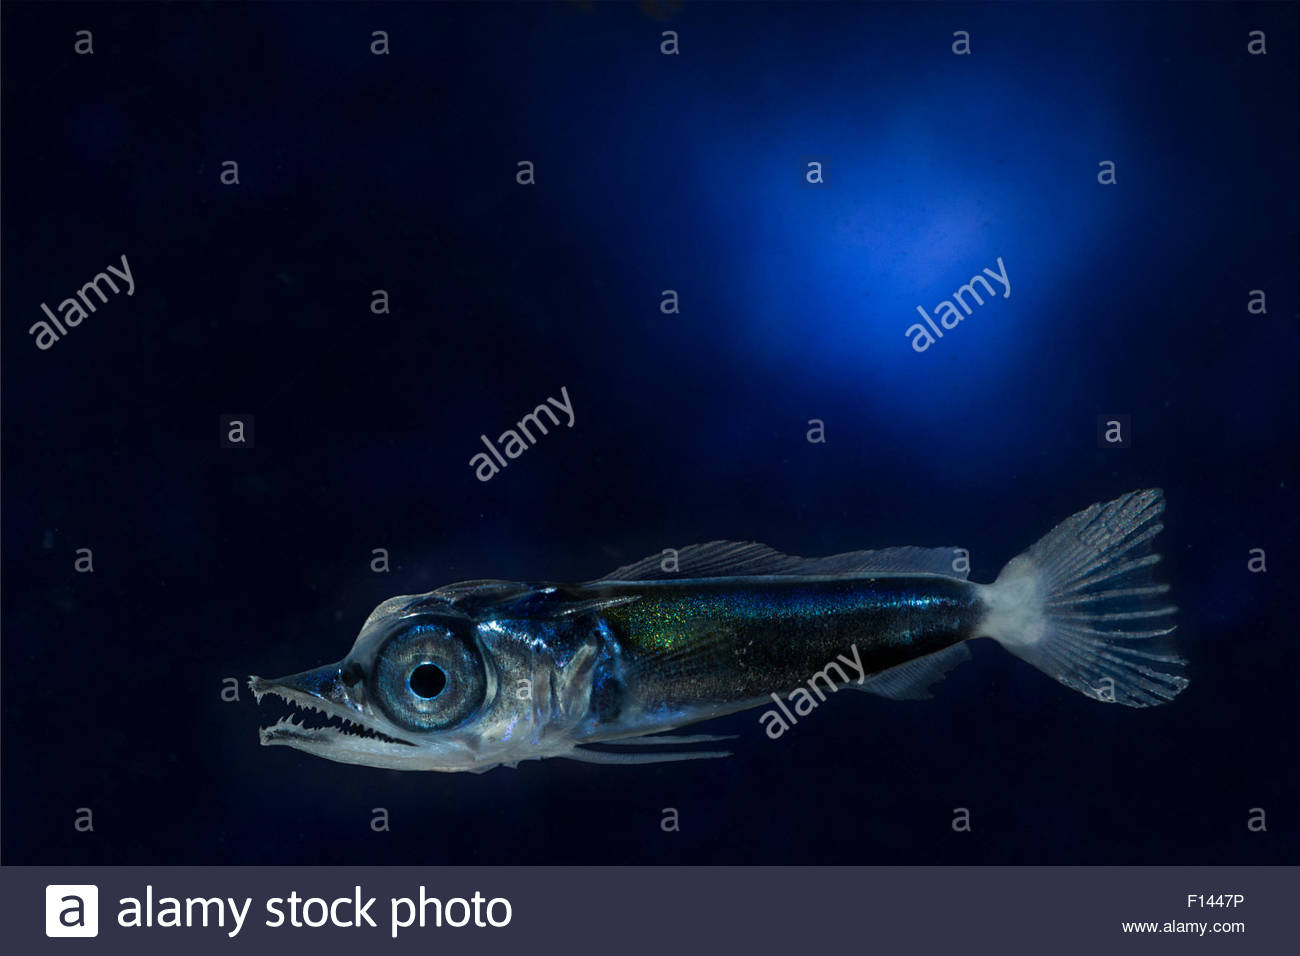 Planktonic larva of Pacific blue marlin (Makaira nigricans) Kona, Hawaii, USA. Digital composite. - Stock Image